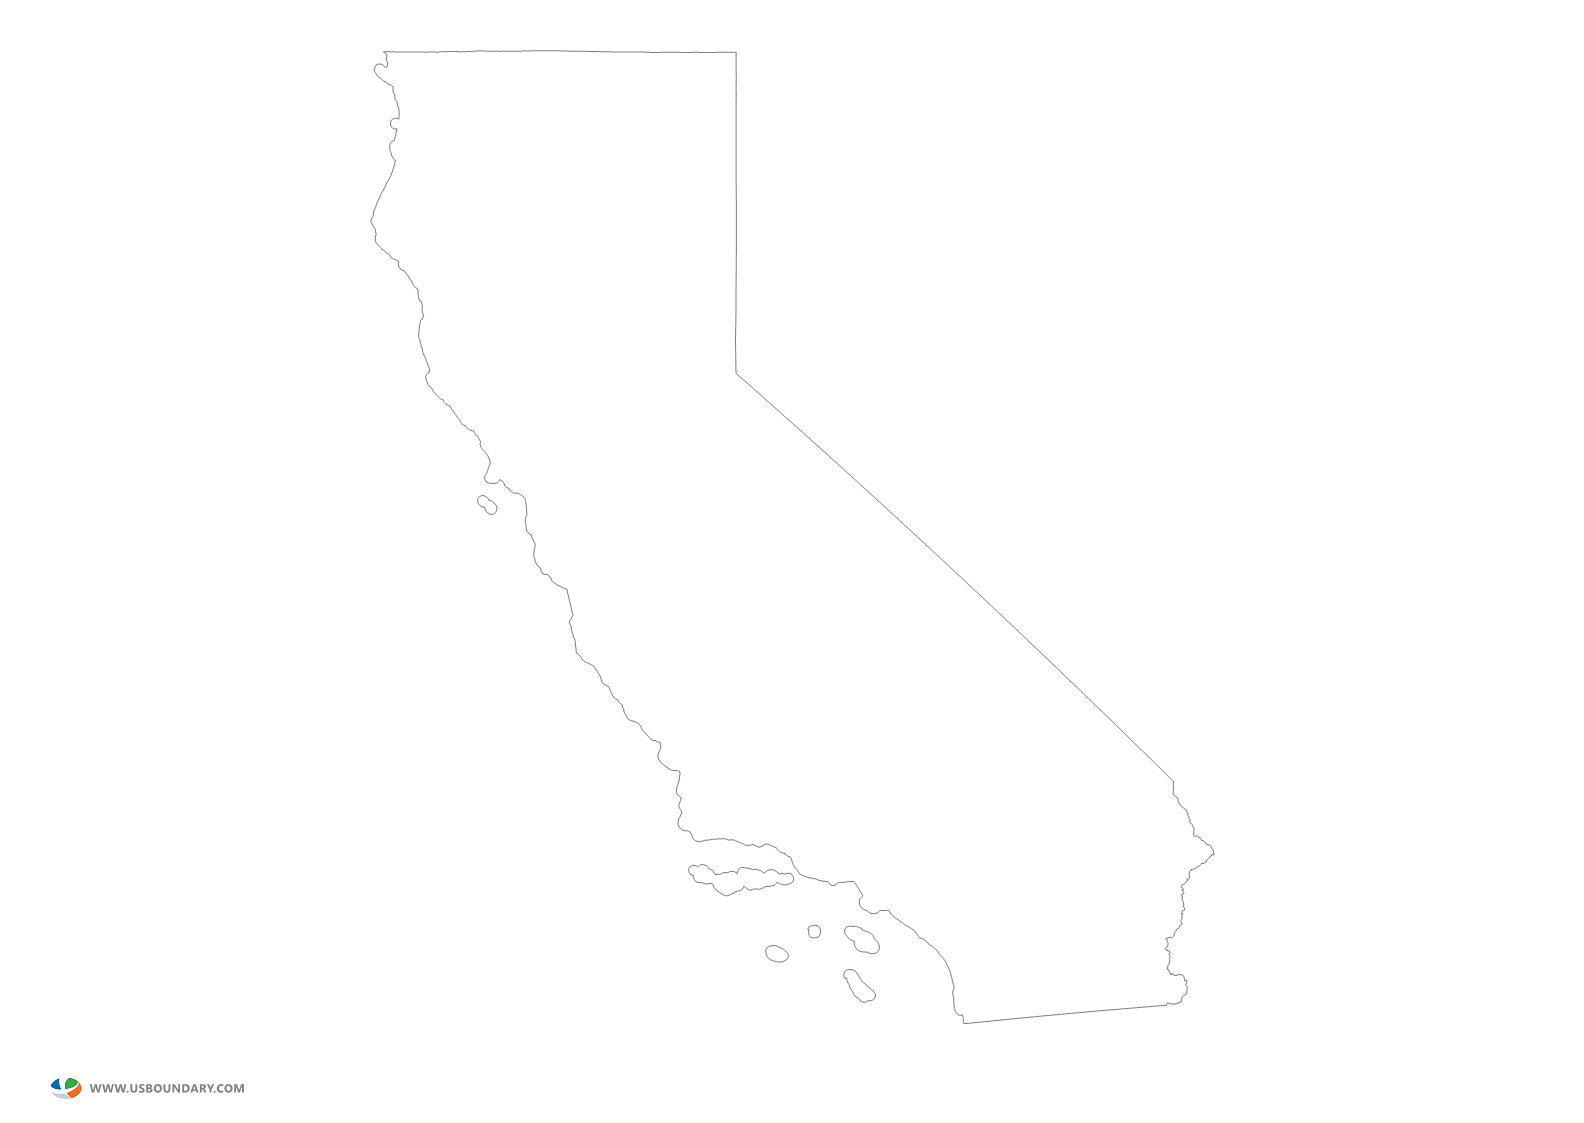 Transparent california.com white. State maps download california